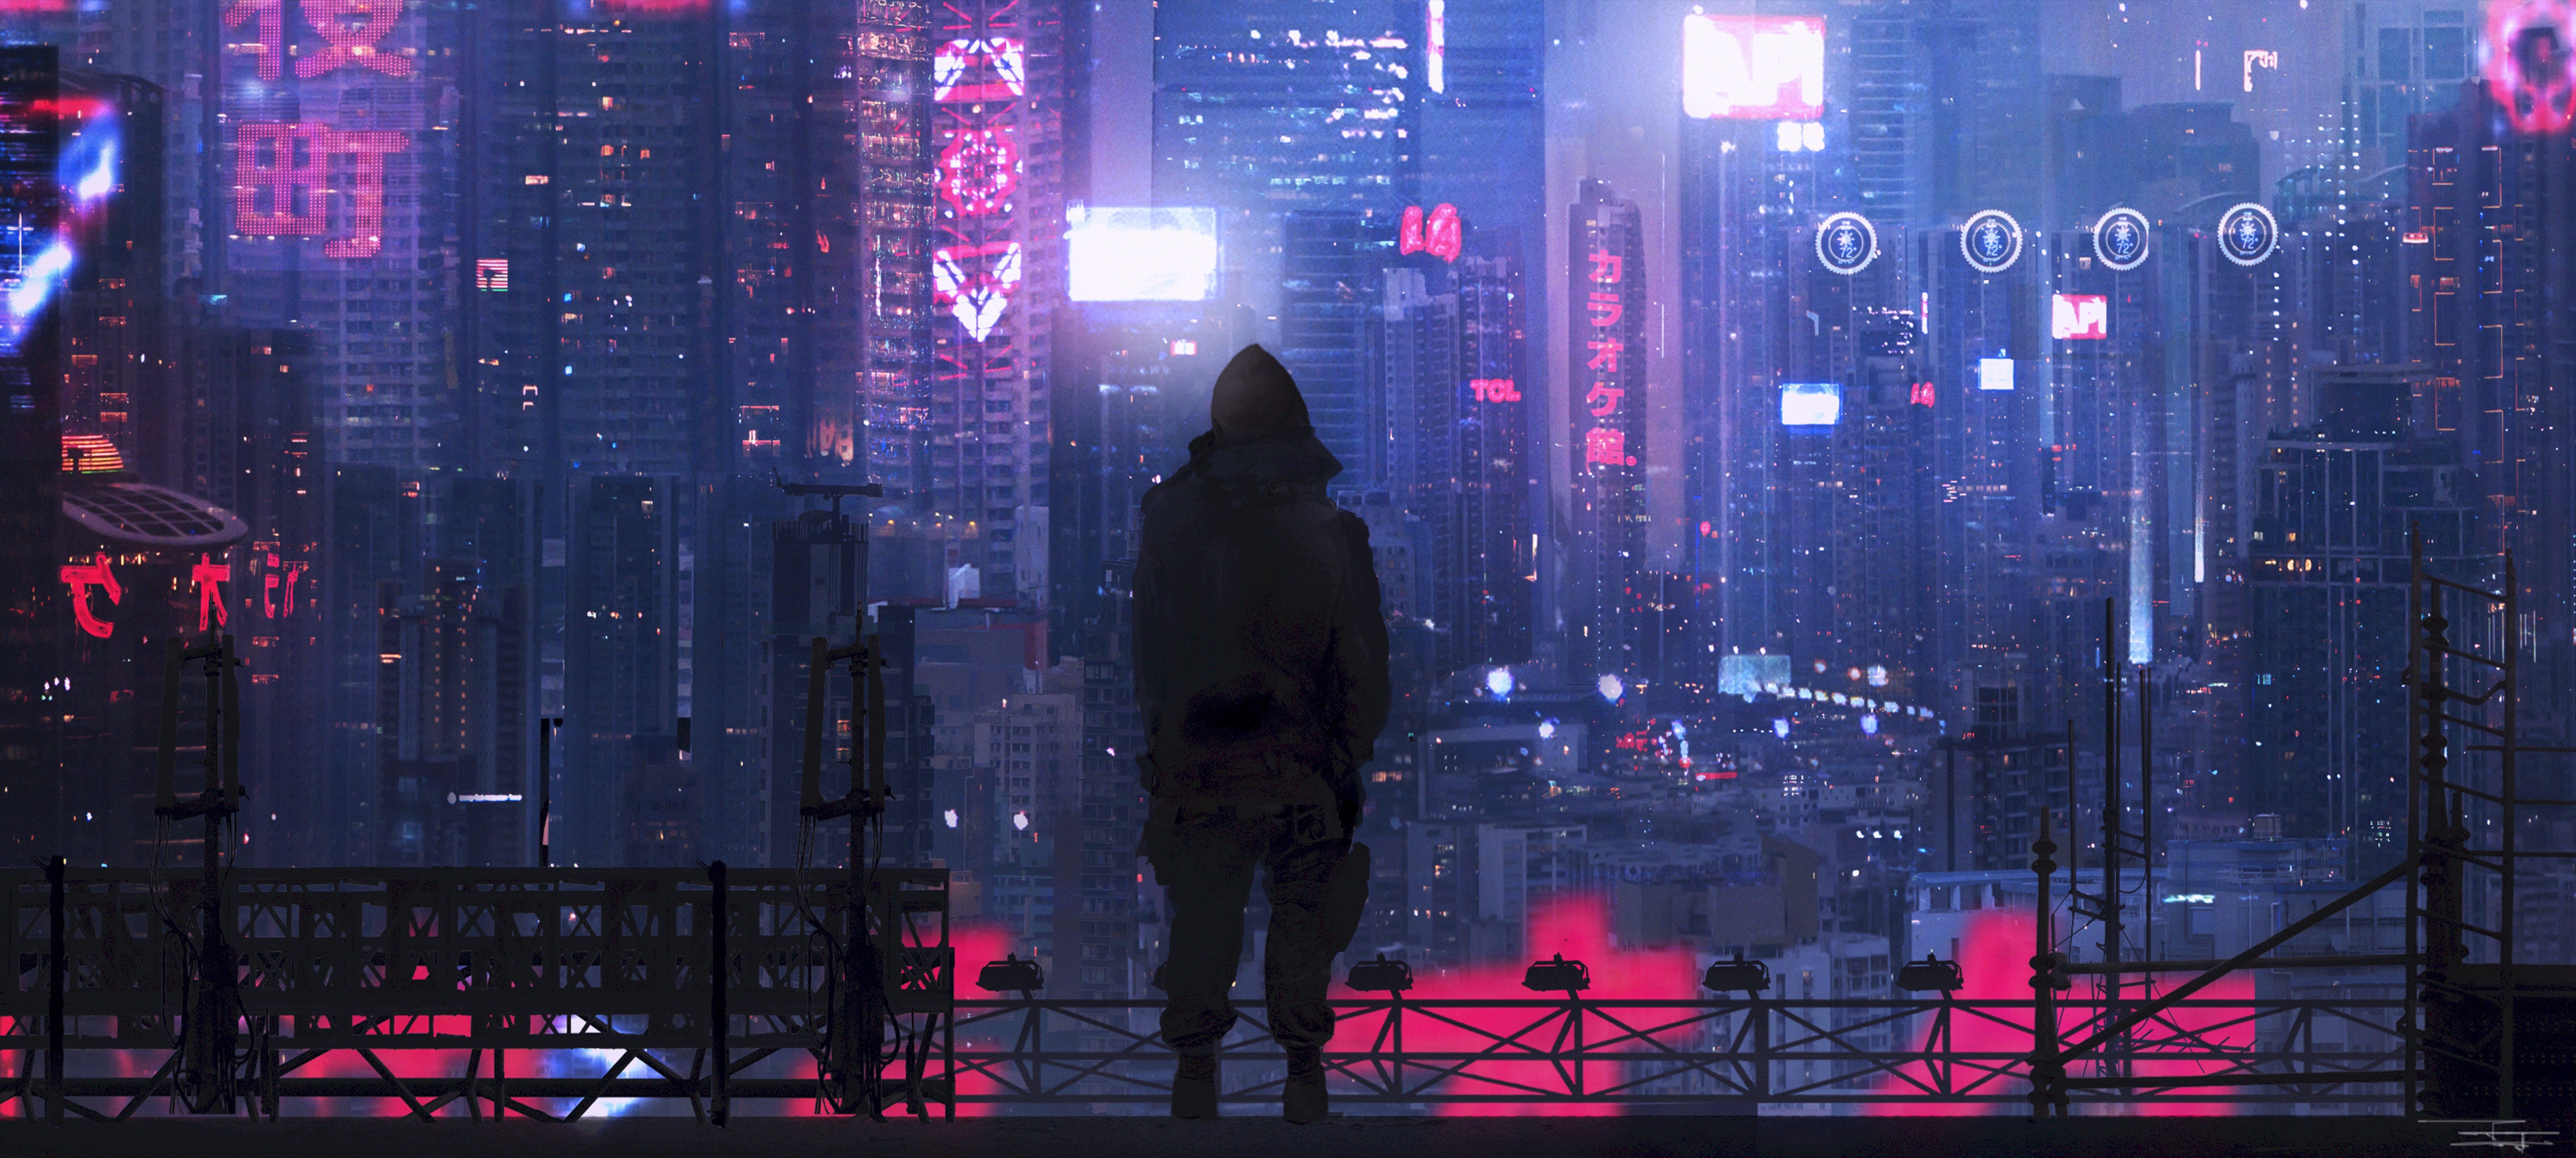 89819 download wallpaper City, Silhouette, Art, Cyberpunk, Futurism, Sci-Fi screensavers and pictures for free